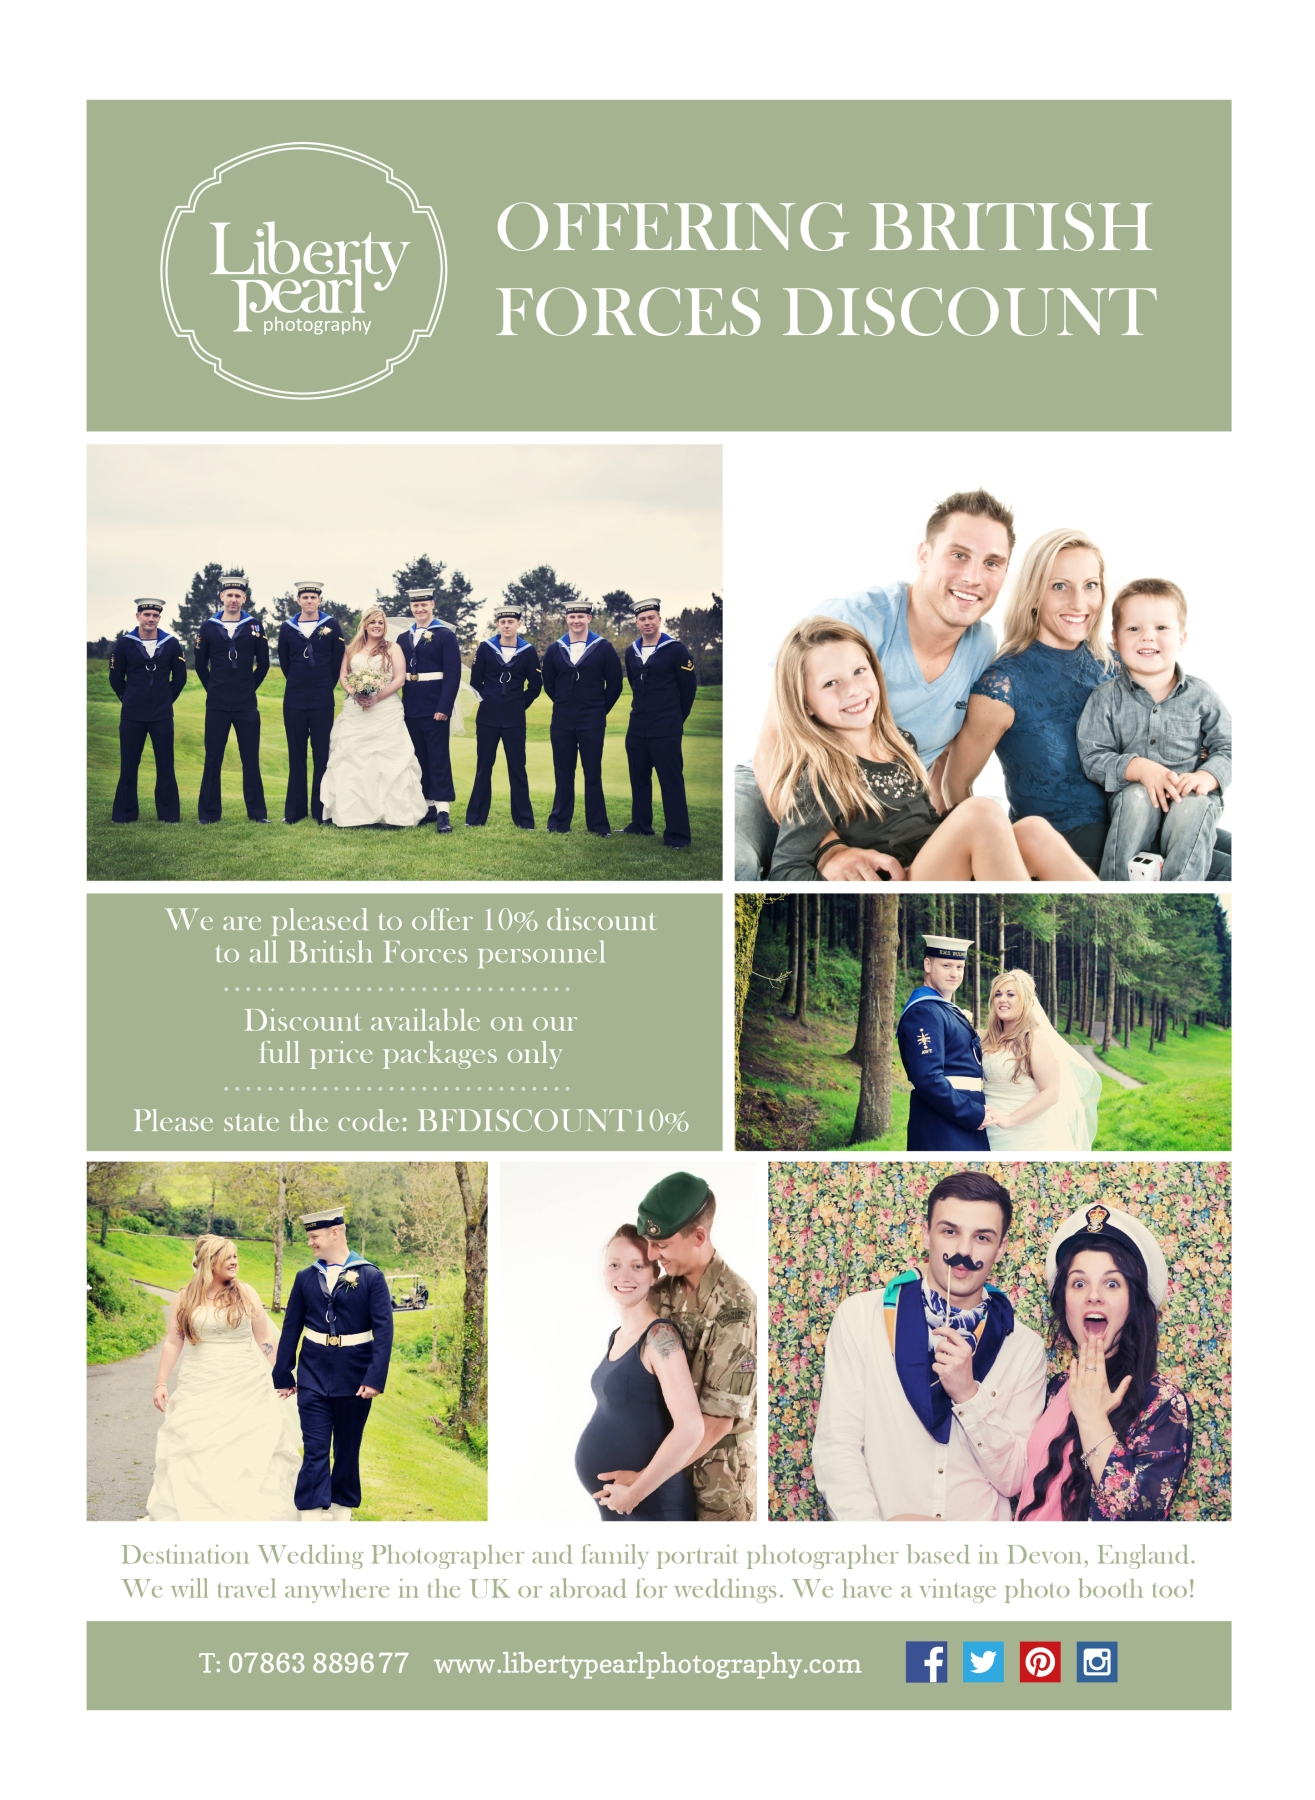 We Offer 10% British Forces Discount wedding photography Plymouth Devon Exeter